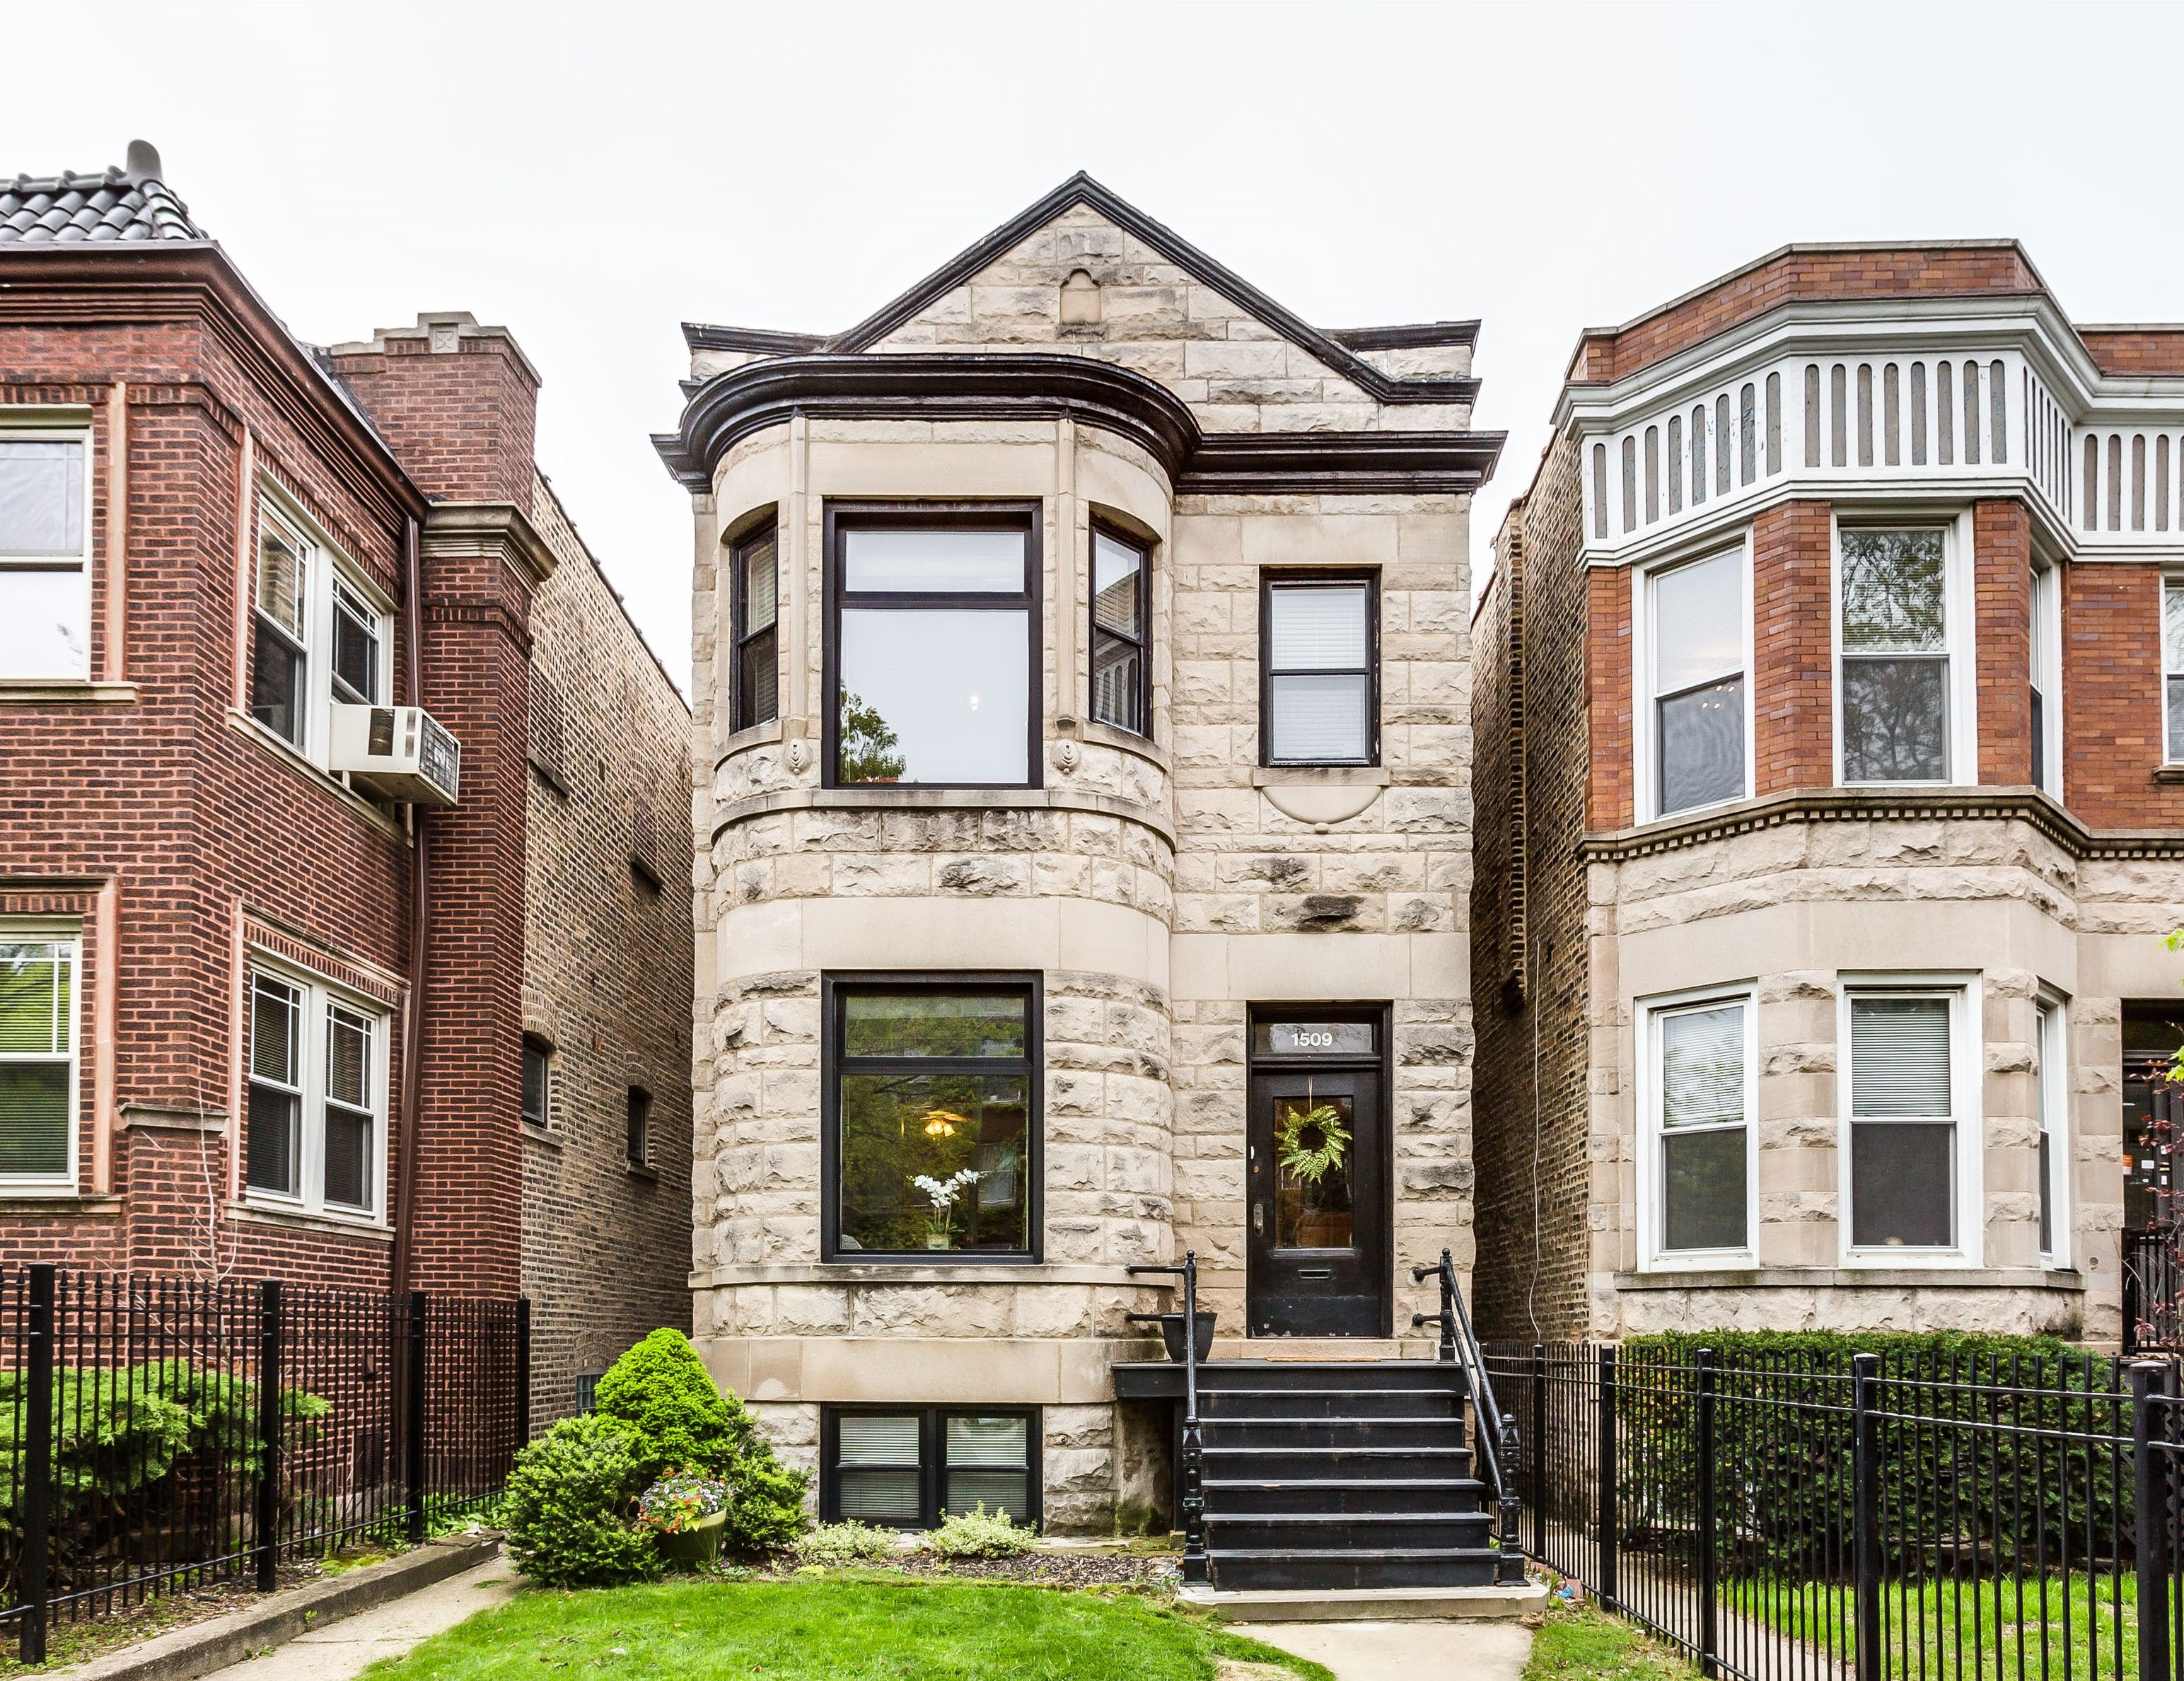 Classic 2 Flat Greystone Apartment Building In The Lakeview Neighborhood Of Chicago With Black Door And Townhouse Designs Village House Design Brownstone Homes